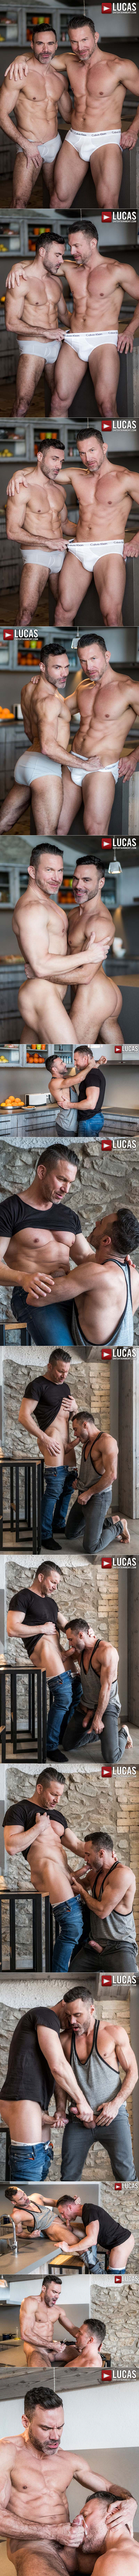 Daddy's Good Boy, Scene One (Manuel Skye and Tomas Brand) at Lucas Entertainment